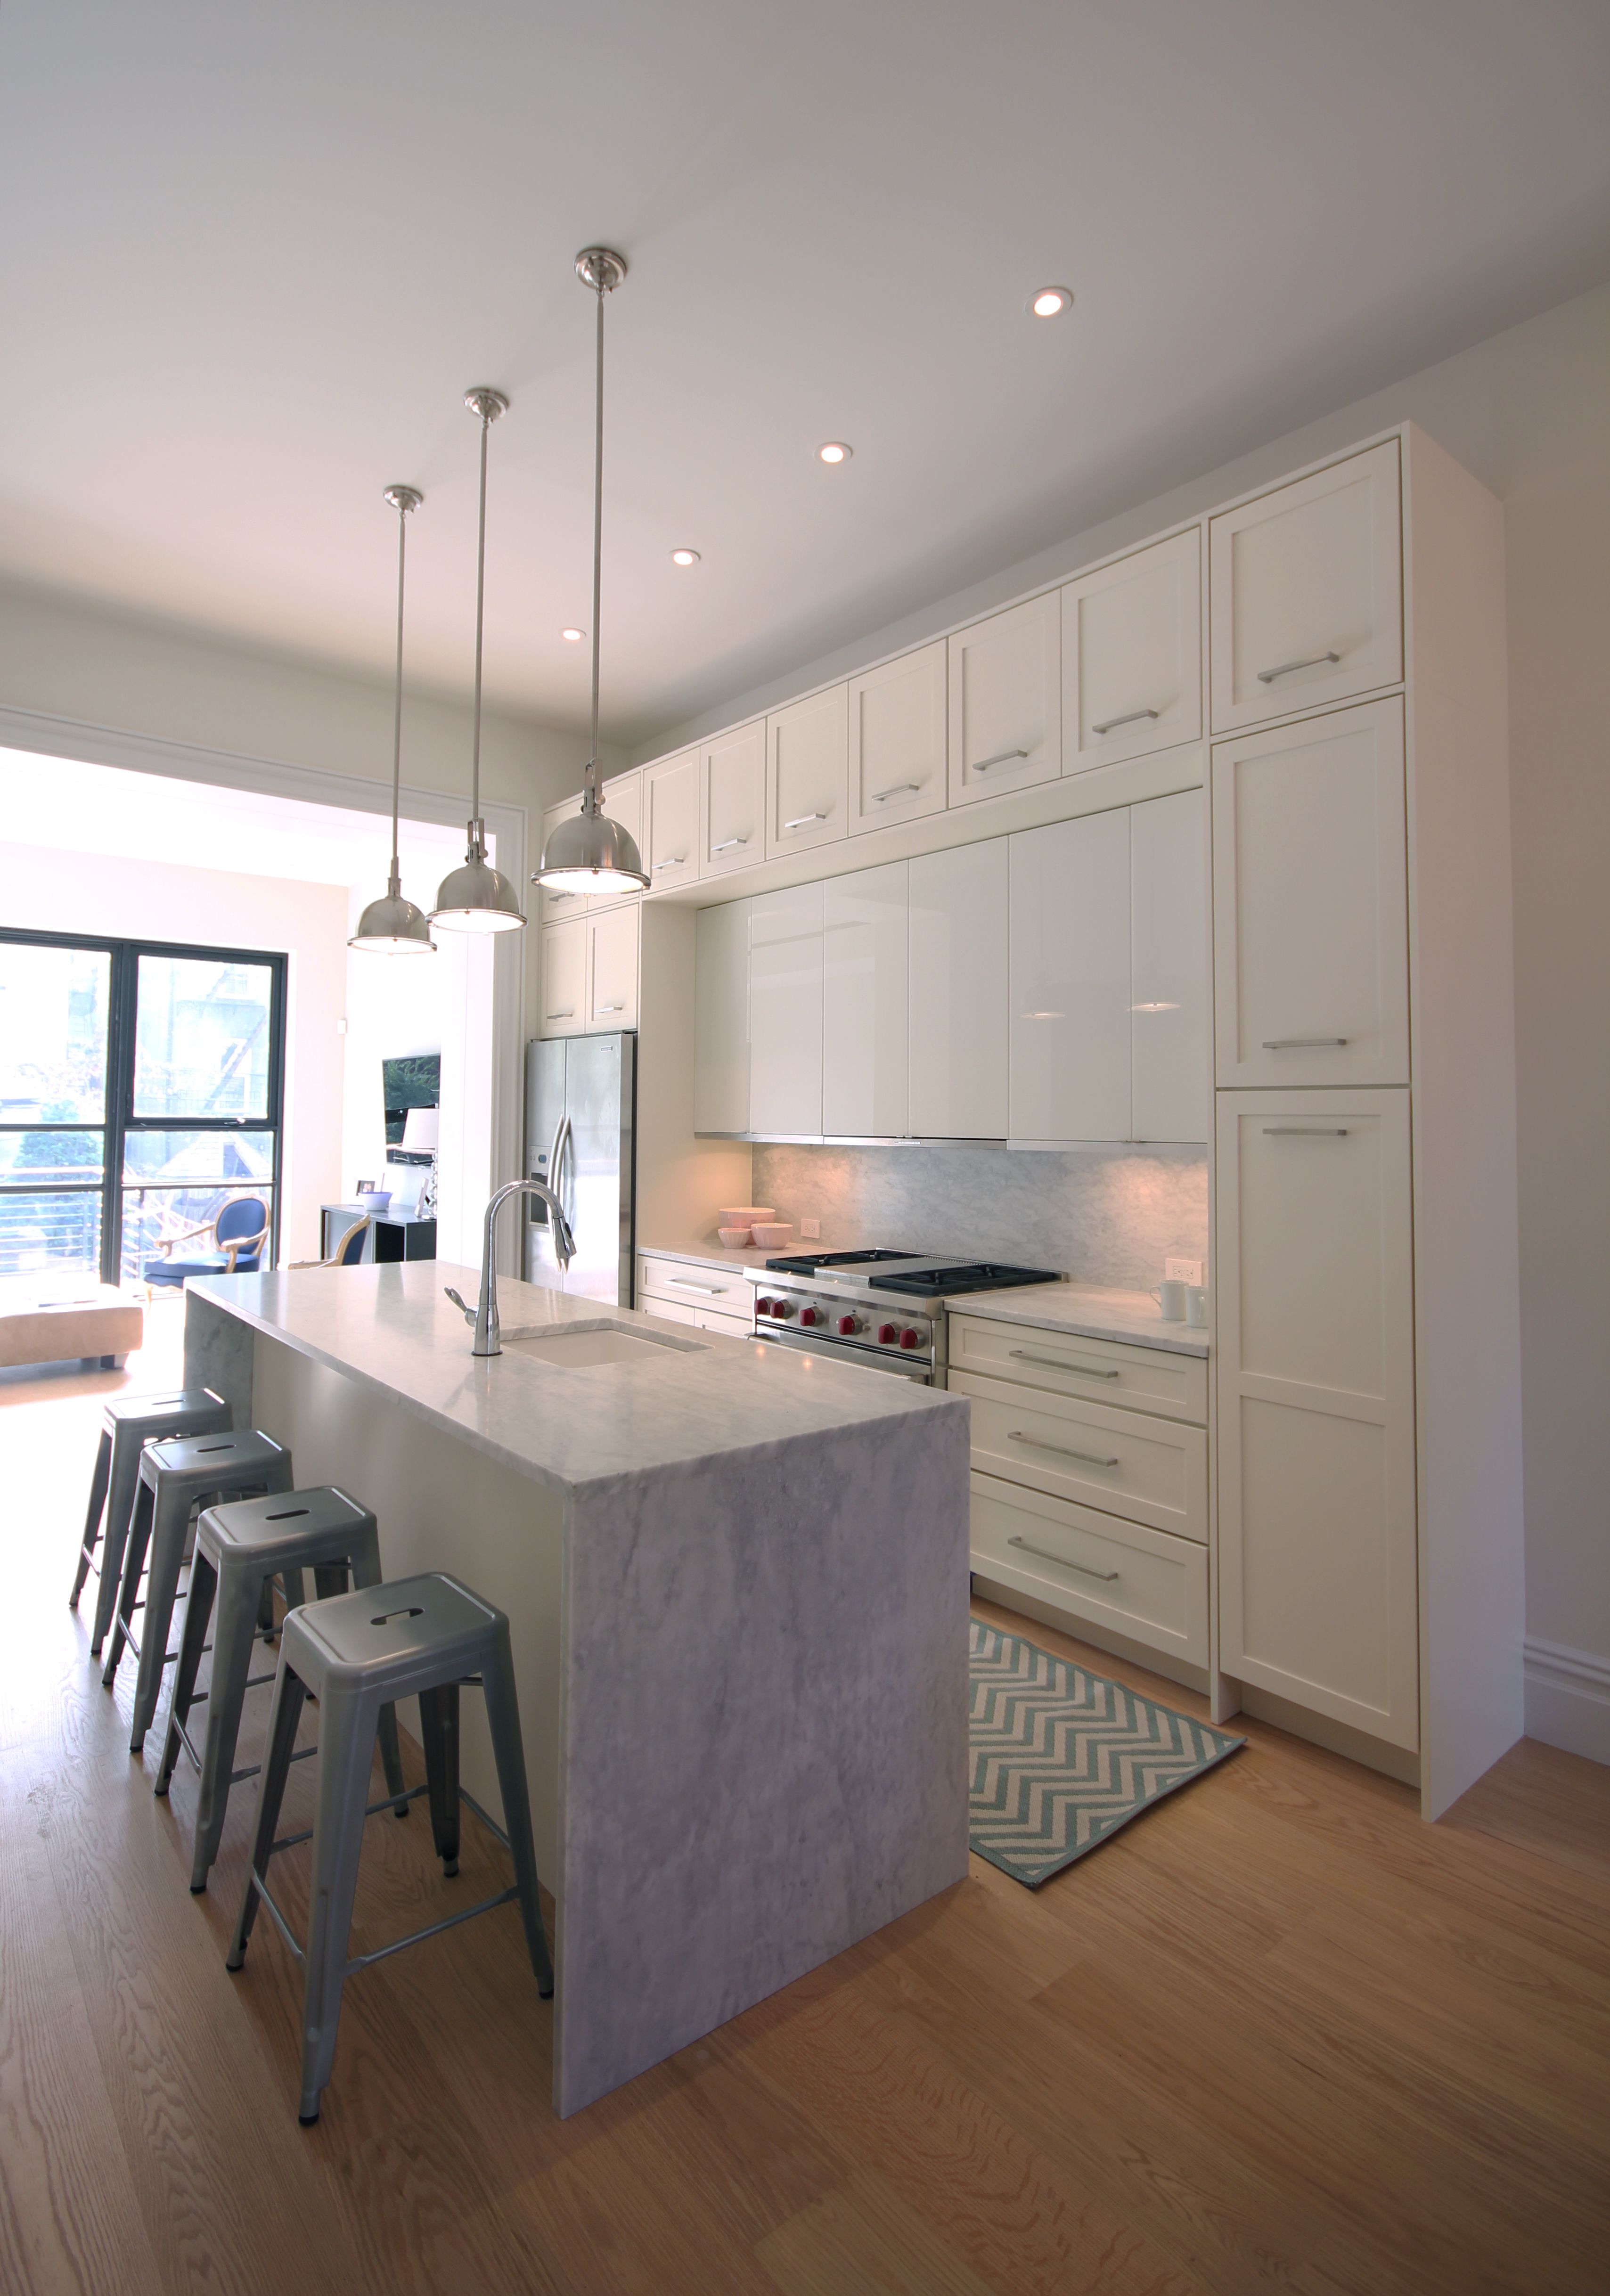 Natural Light Floods This Contemporary Marble Kitchen With White Cabinets    Carroll Gardens Townhouse By Sarah